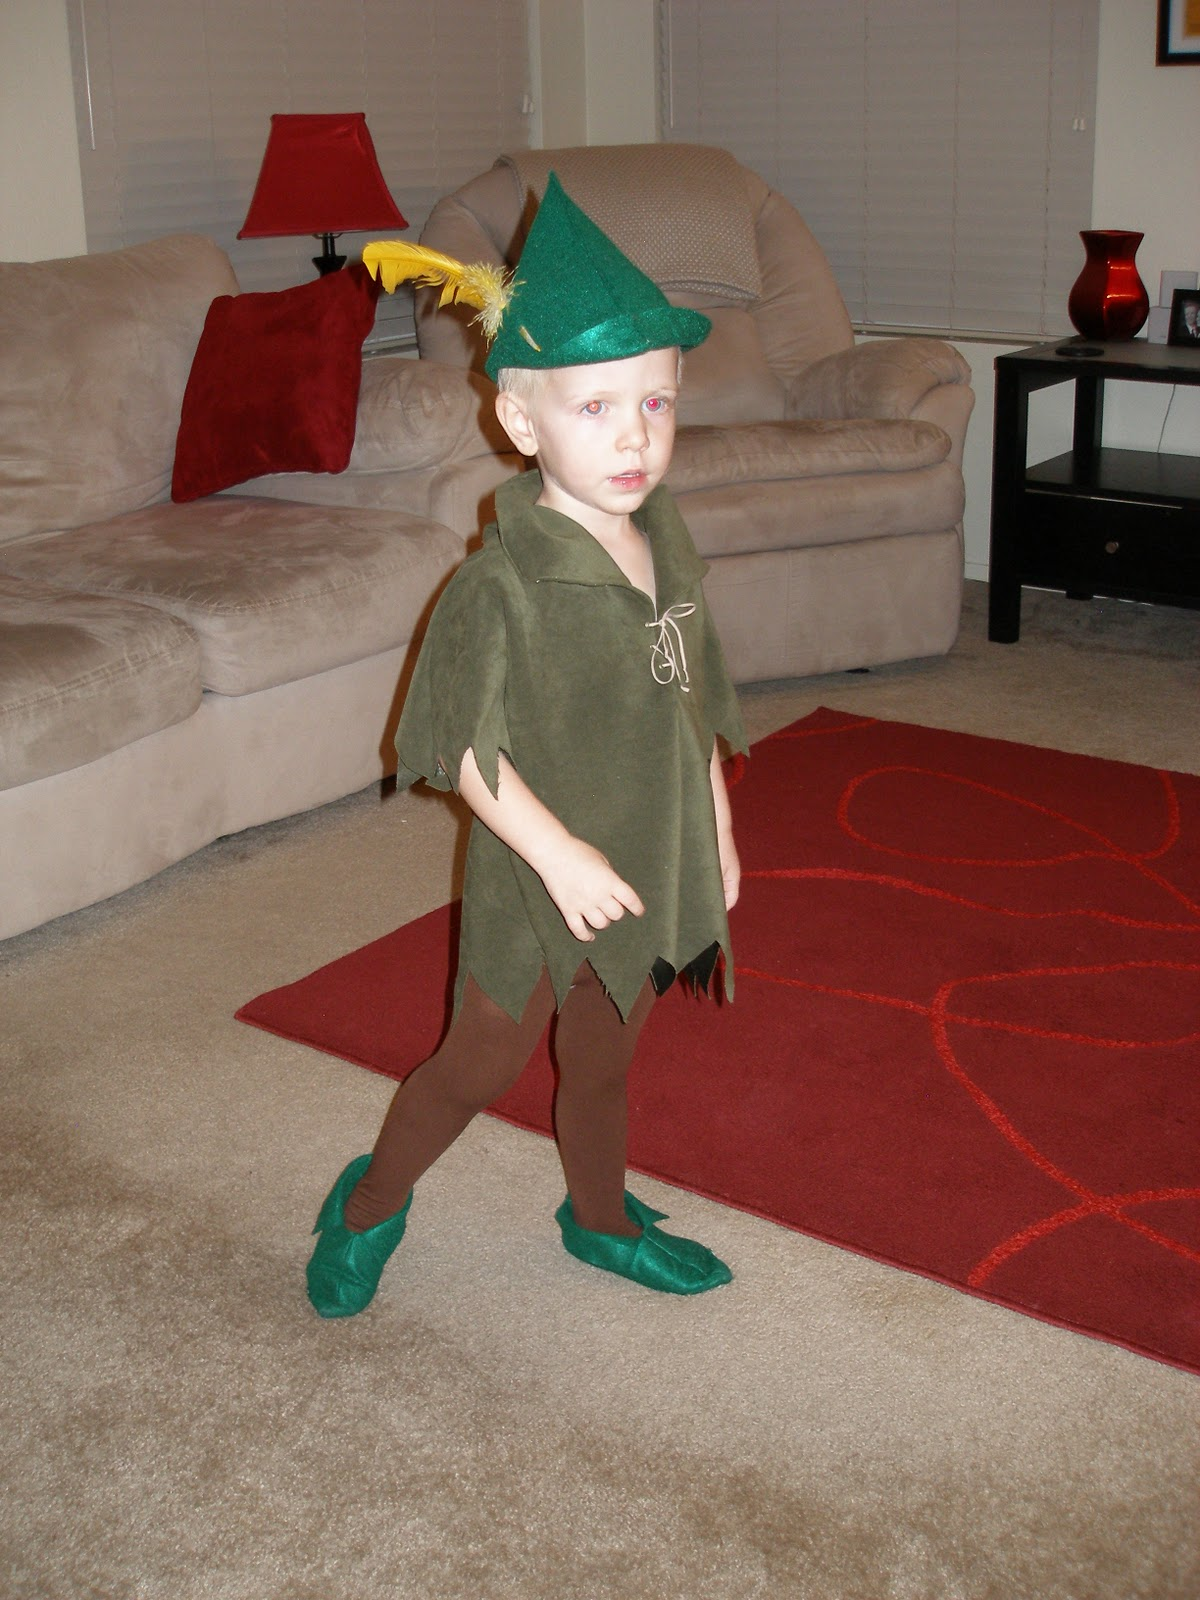 for the costume, and forgot that Peter Pan wears green not brown